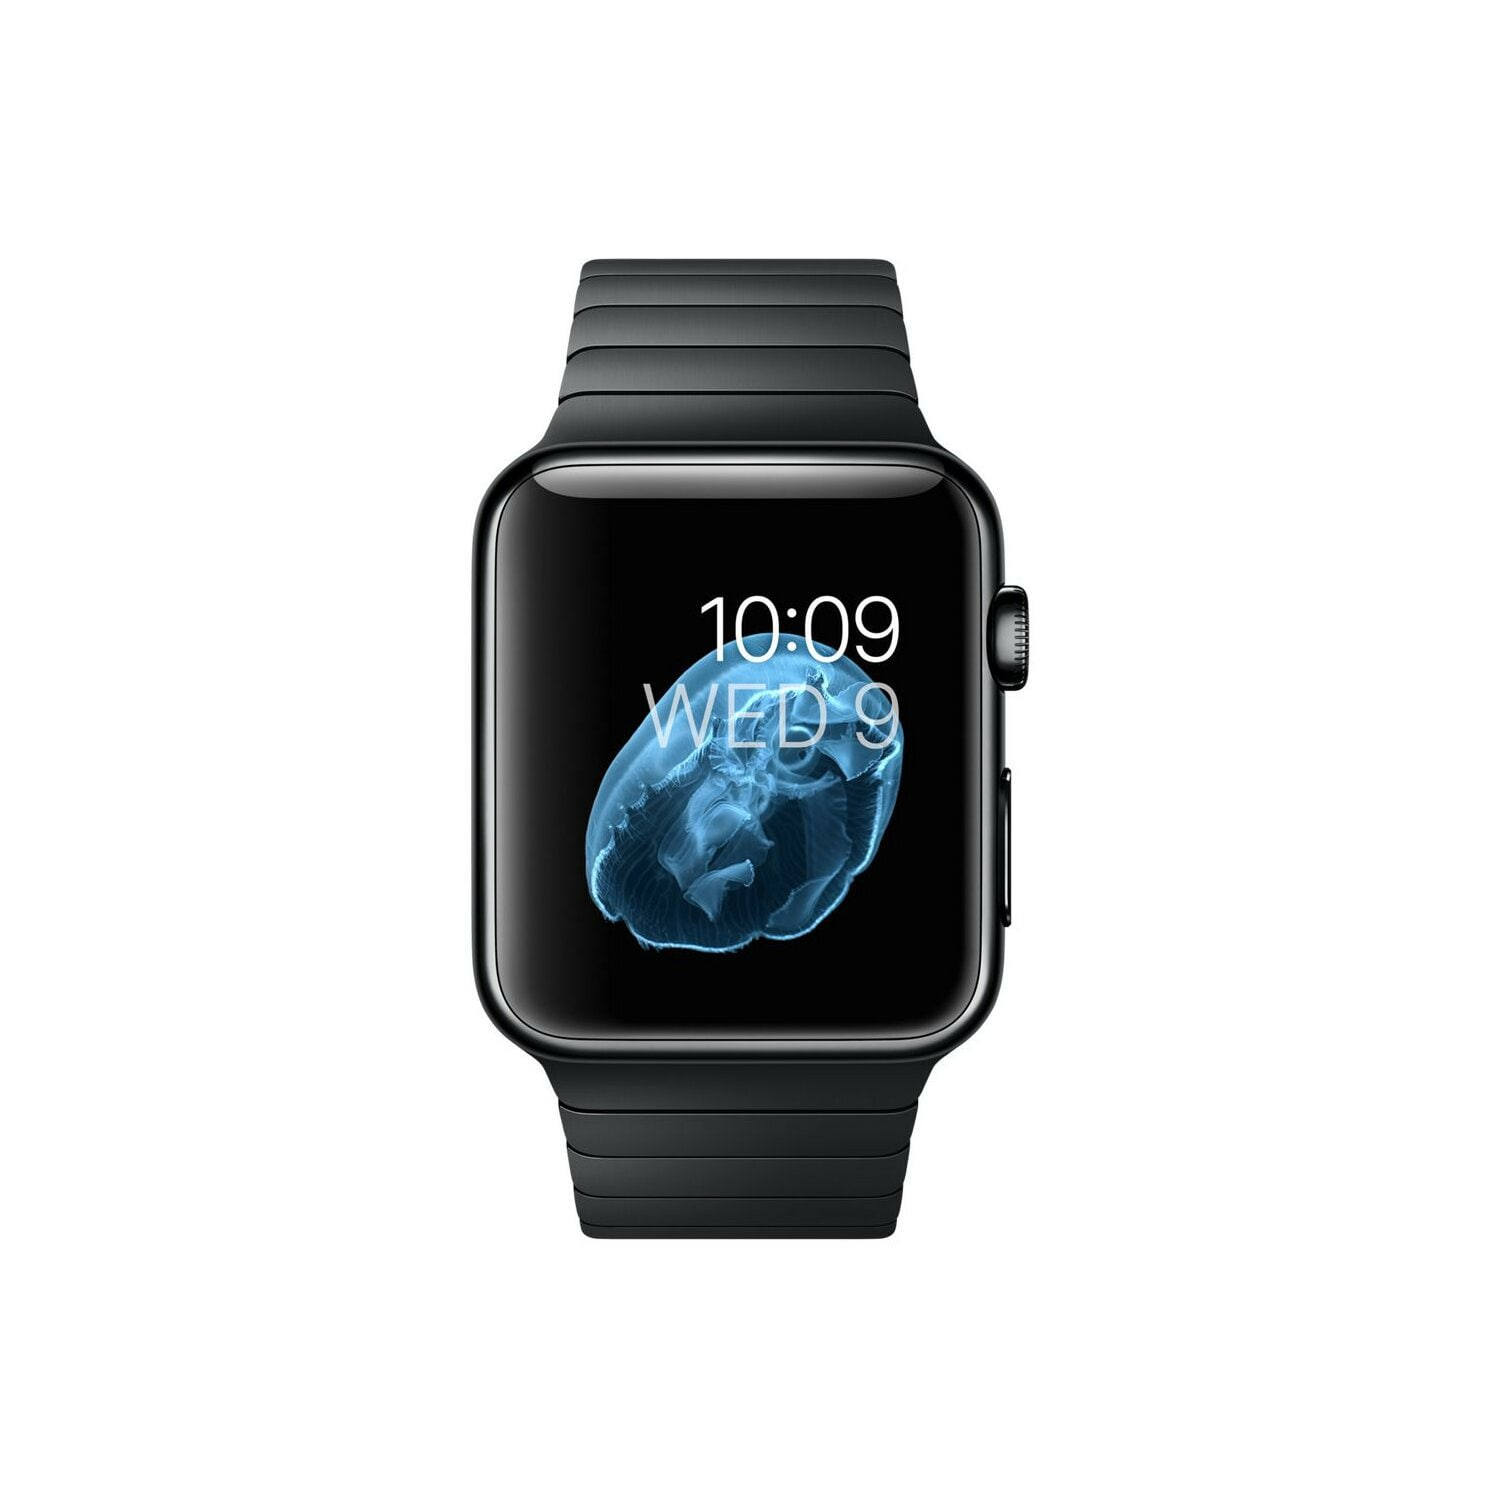 space black stainless steel watch - 600×600